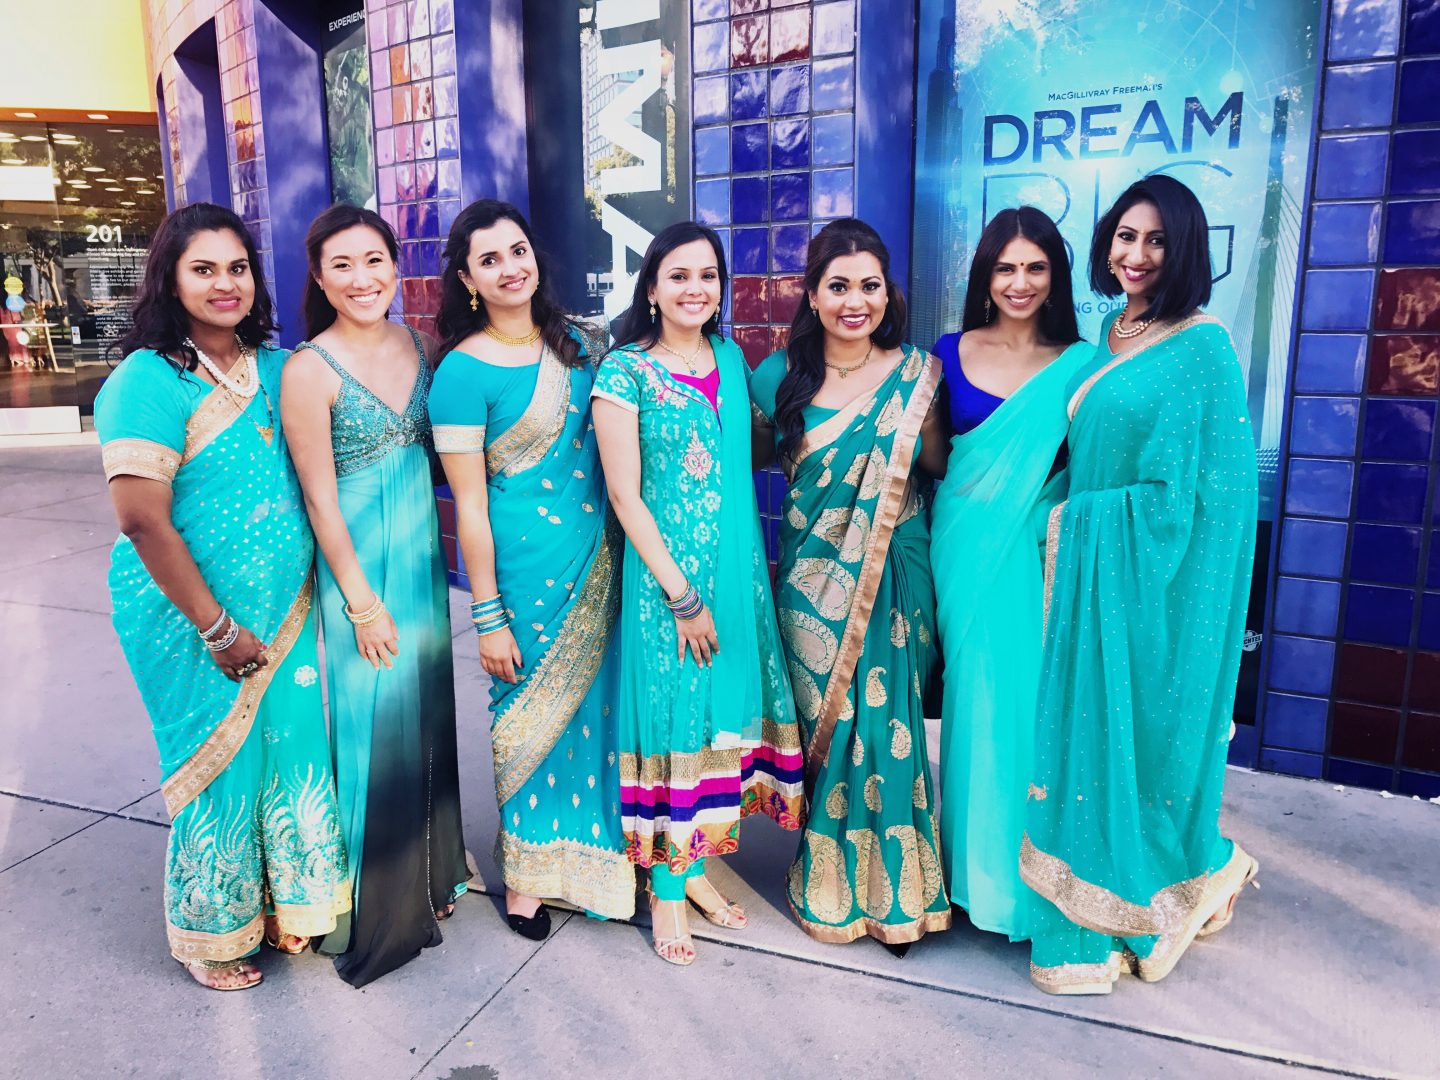 10 things we need to stop doing at south asian weddings